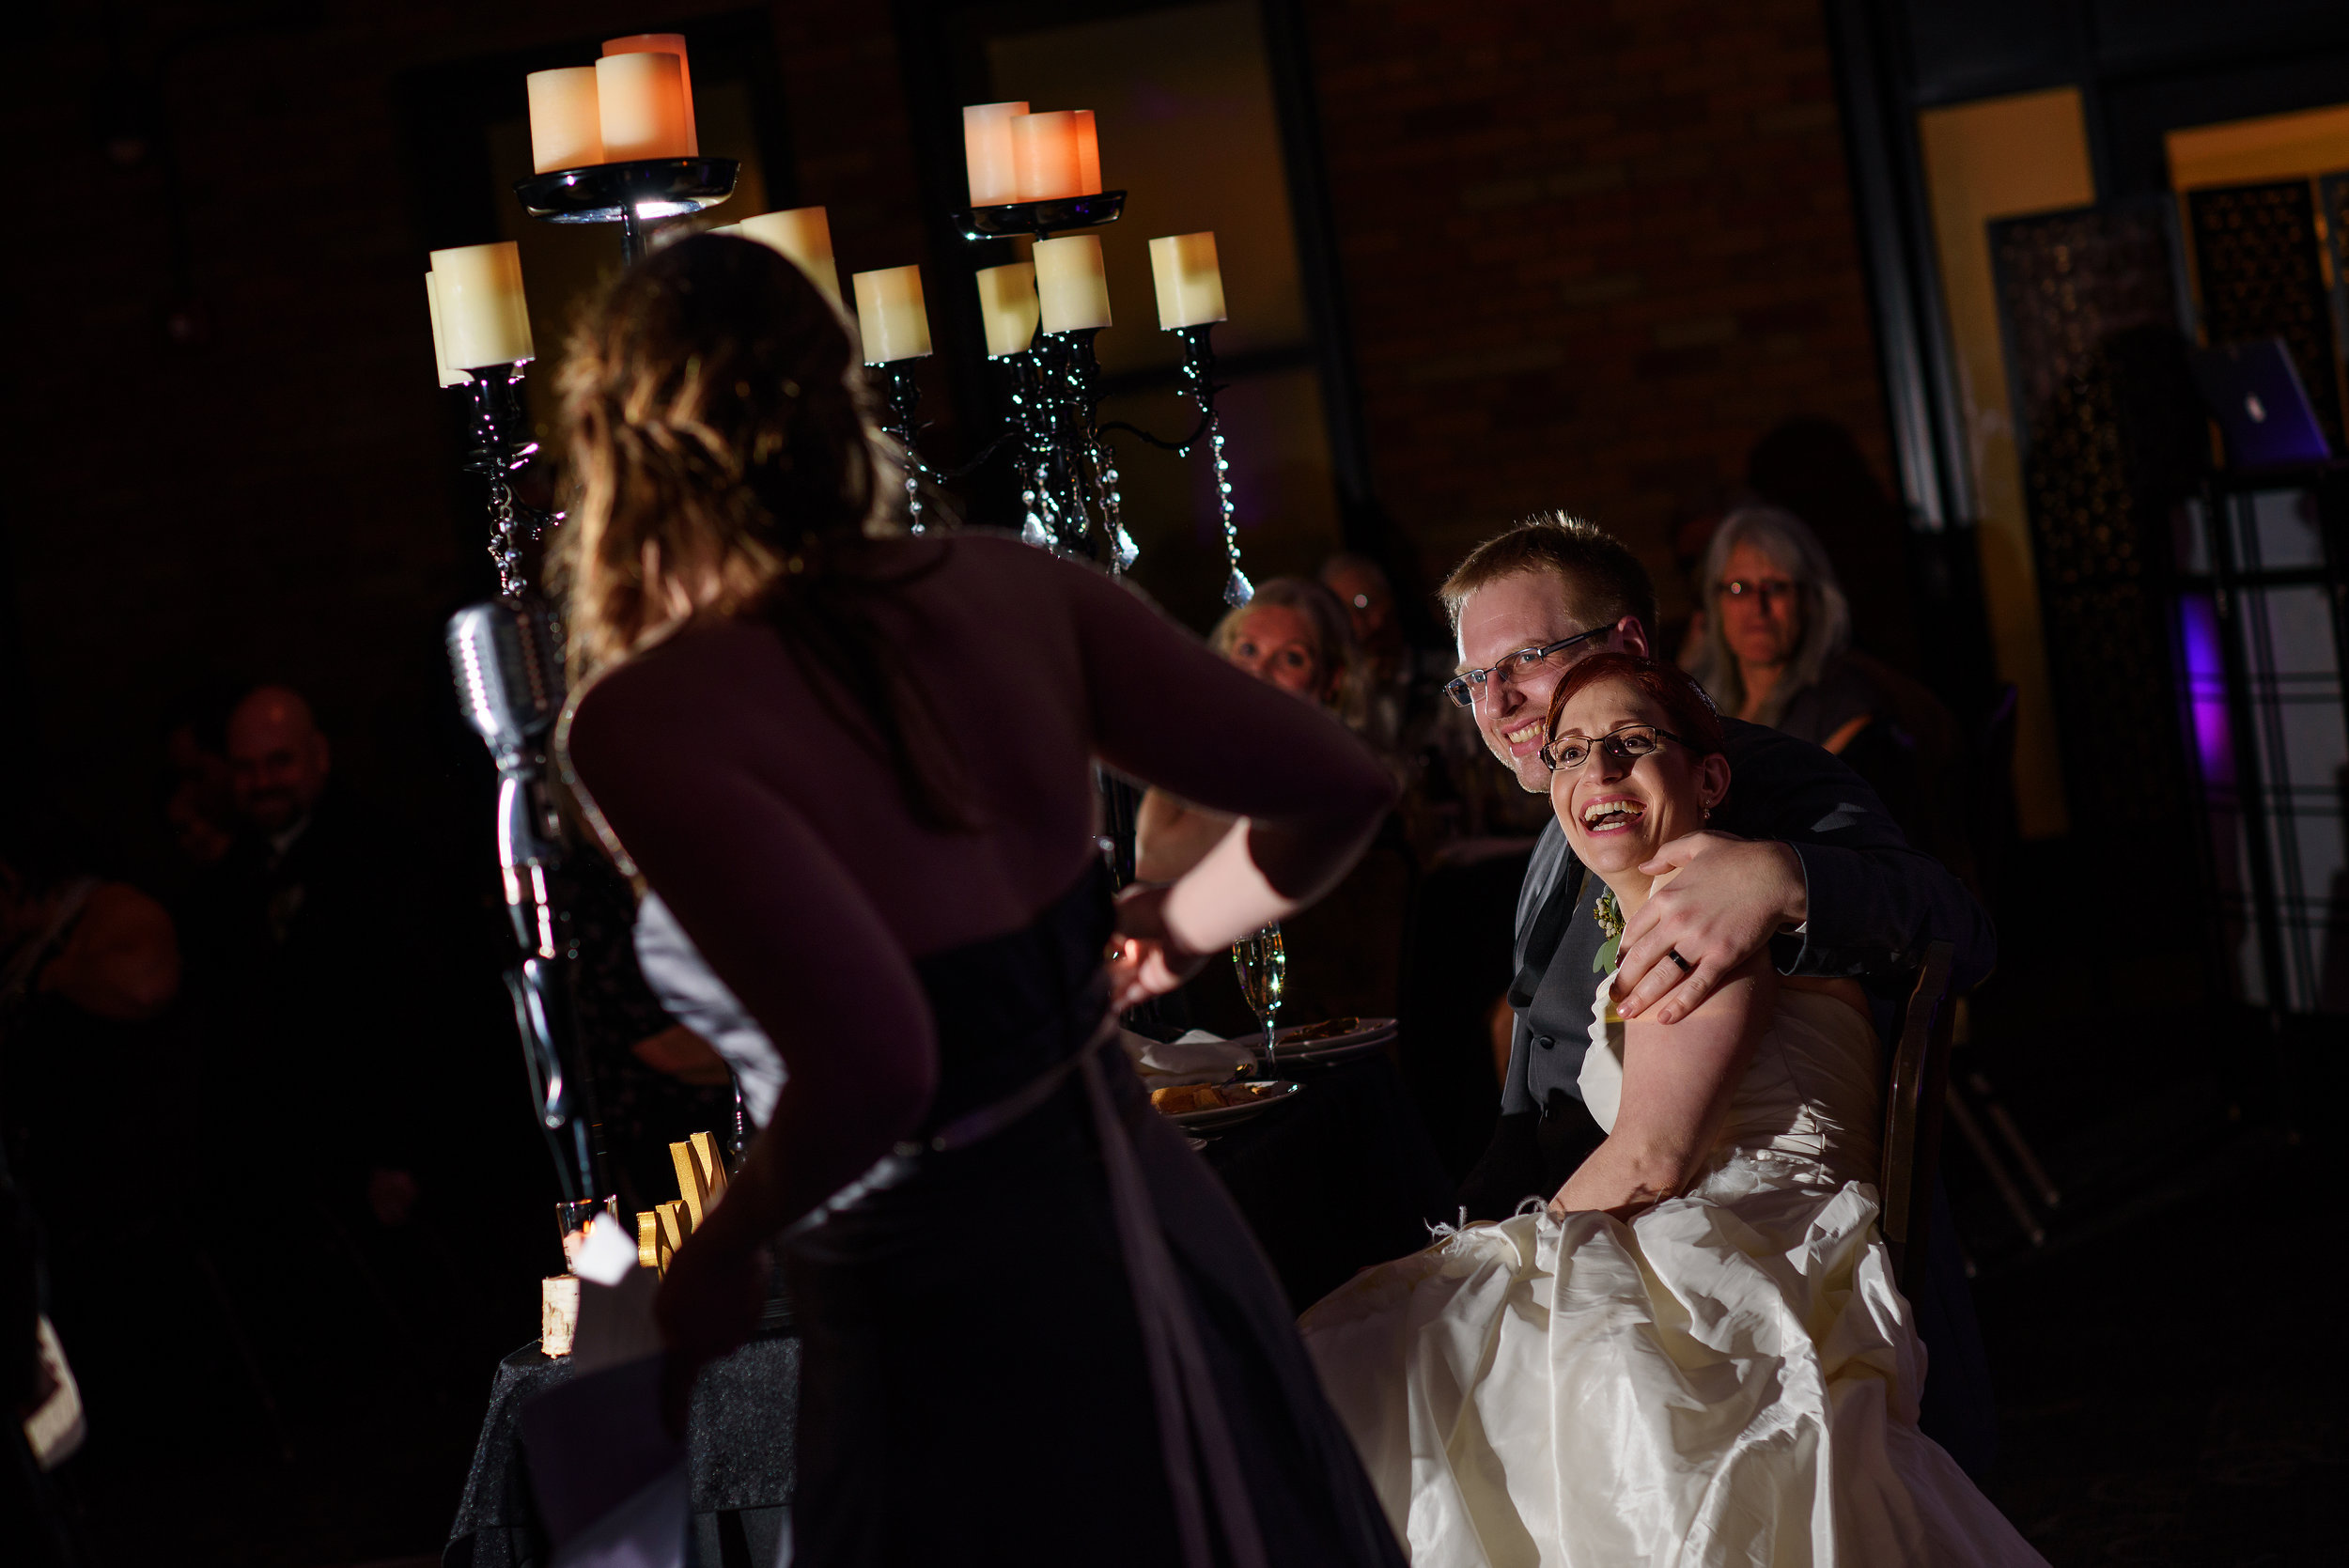 Maid of honor toast during wedding at the Citizen Hotel in Sacramento California.